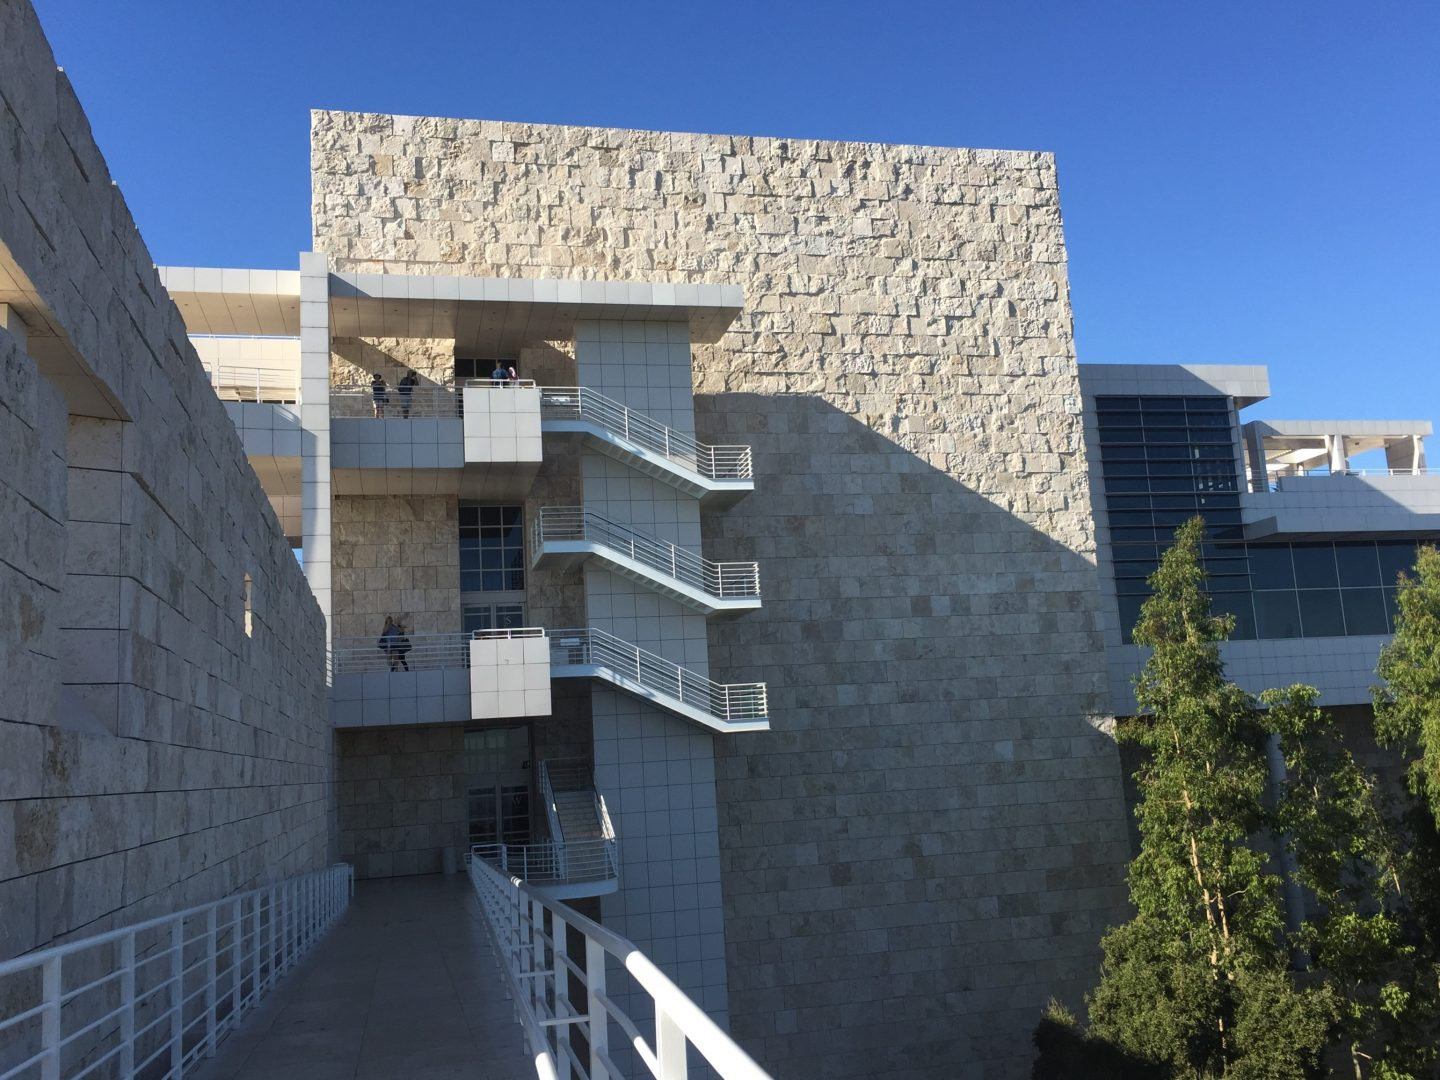 The Getty Centre